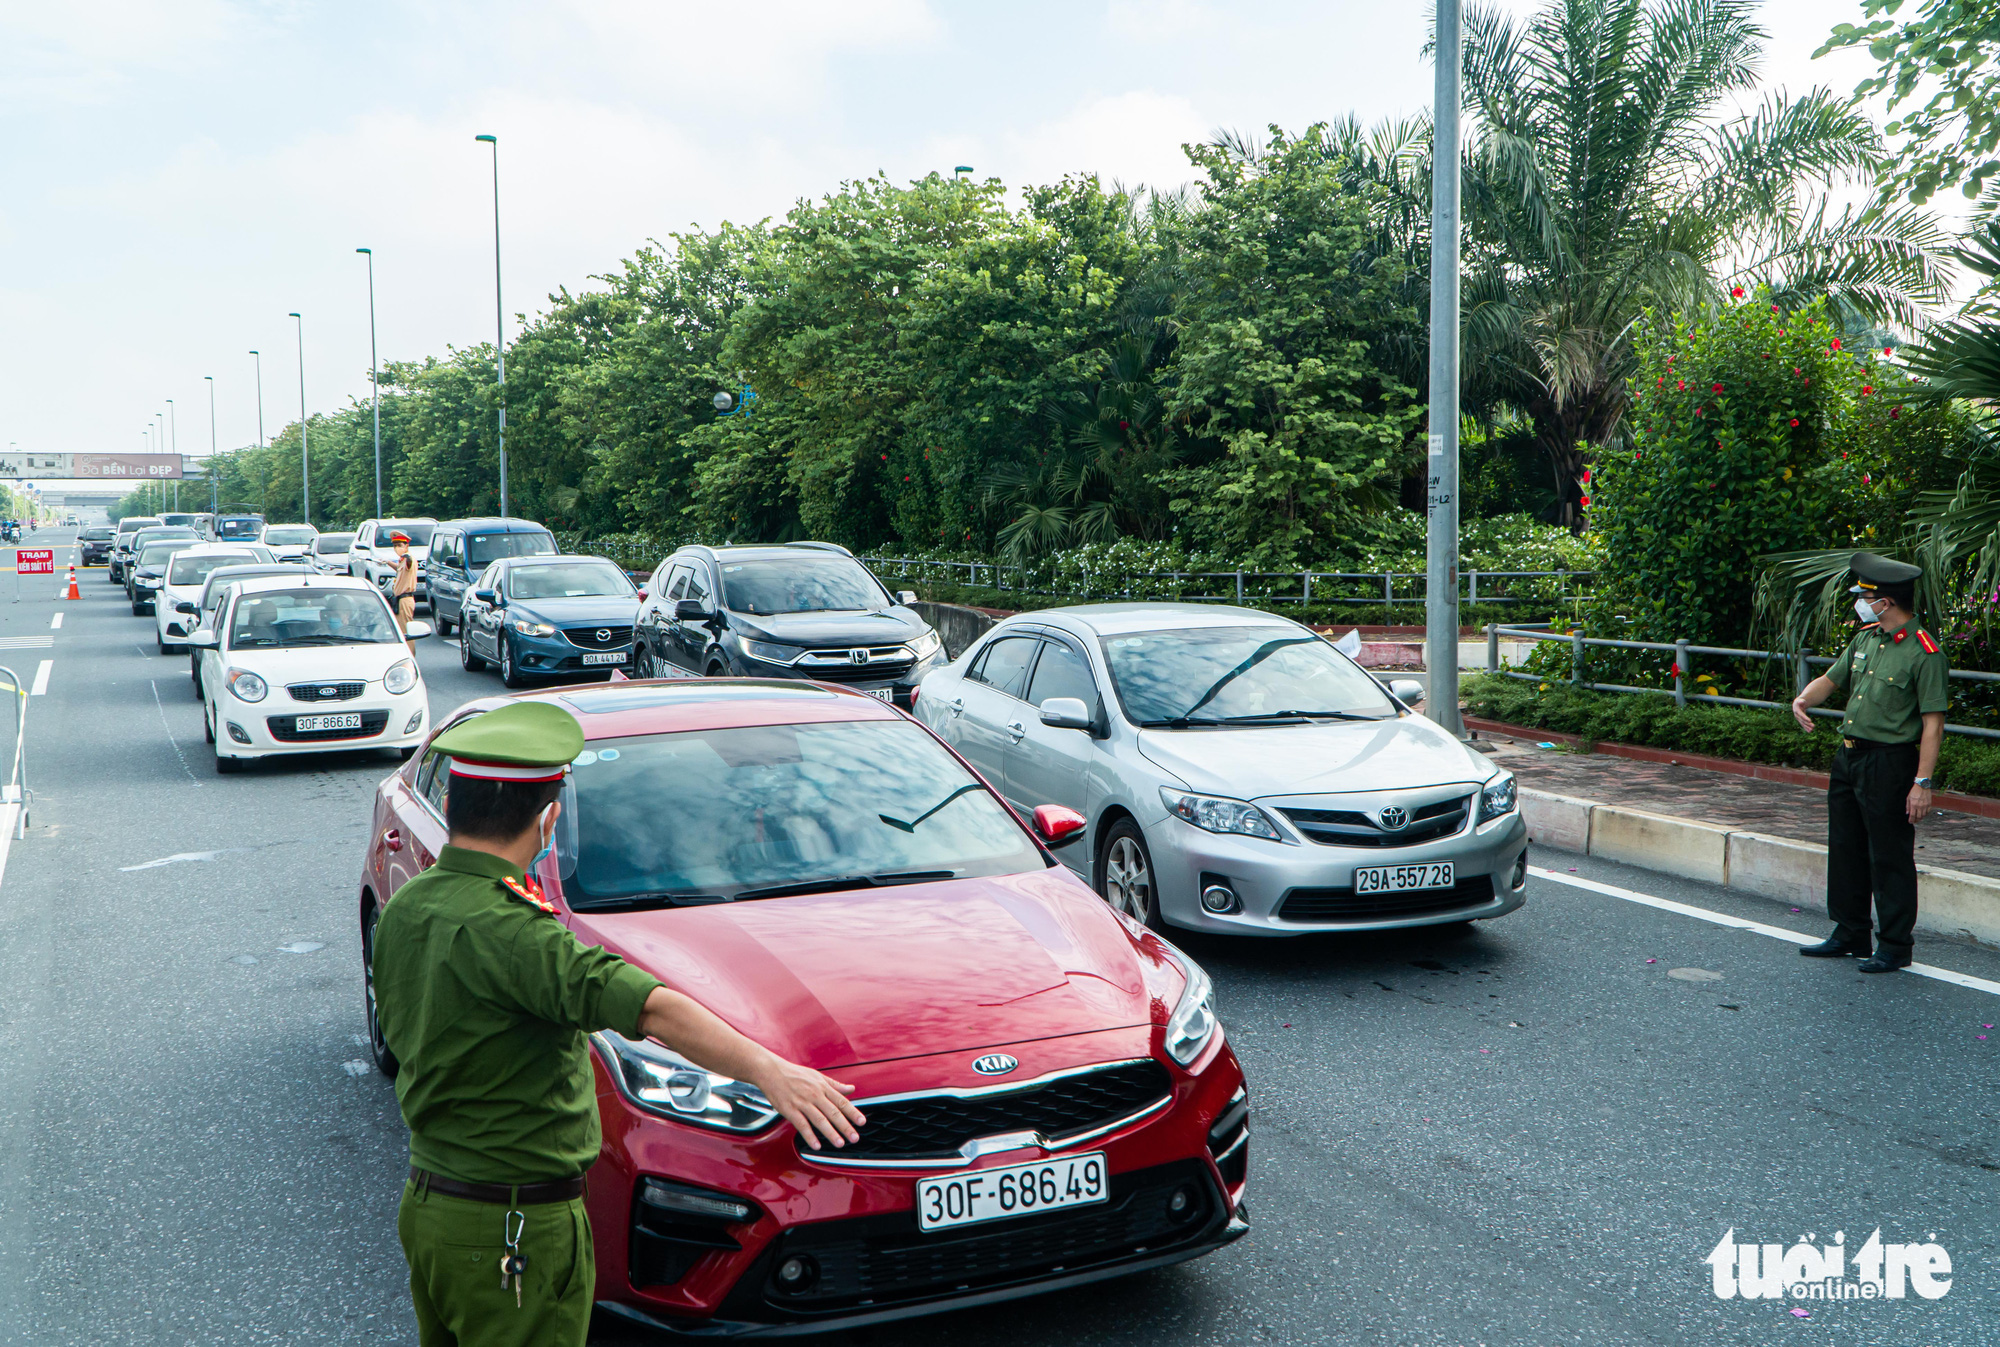 Cars line up in front of a COVID-19 checkpoint in Hanoi, September 6, 2021. Photo: Pham Tuan / Tuoi Tre